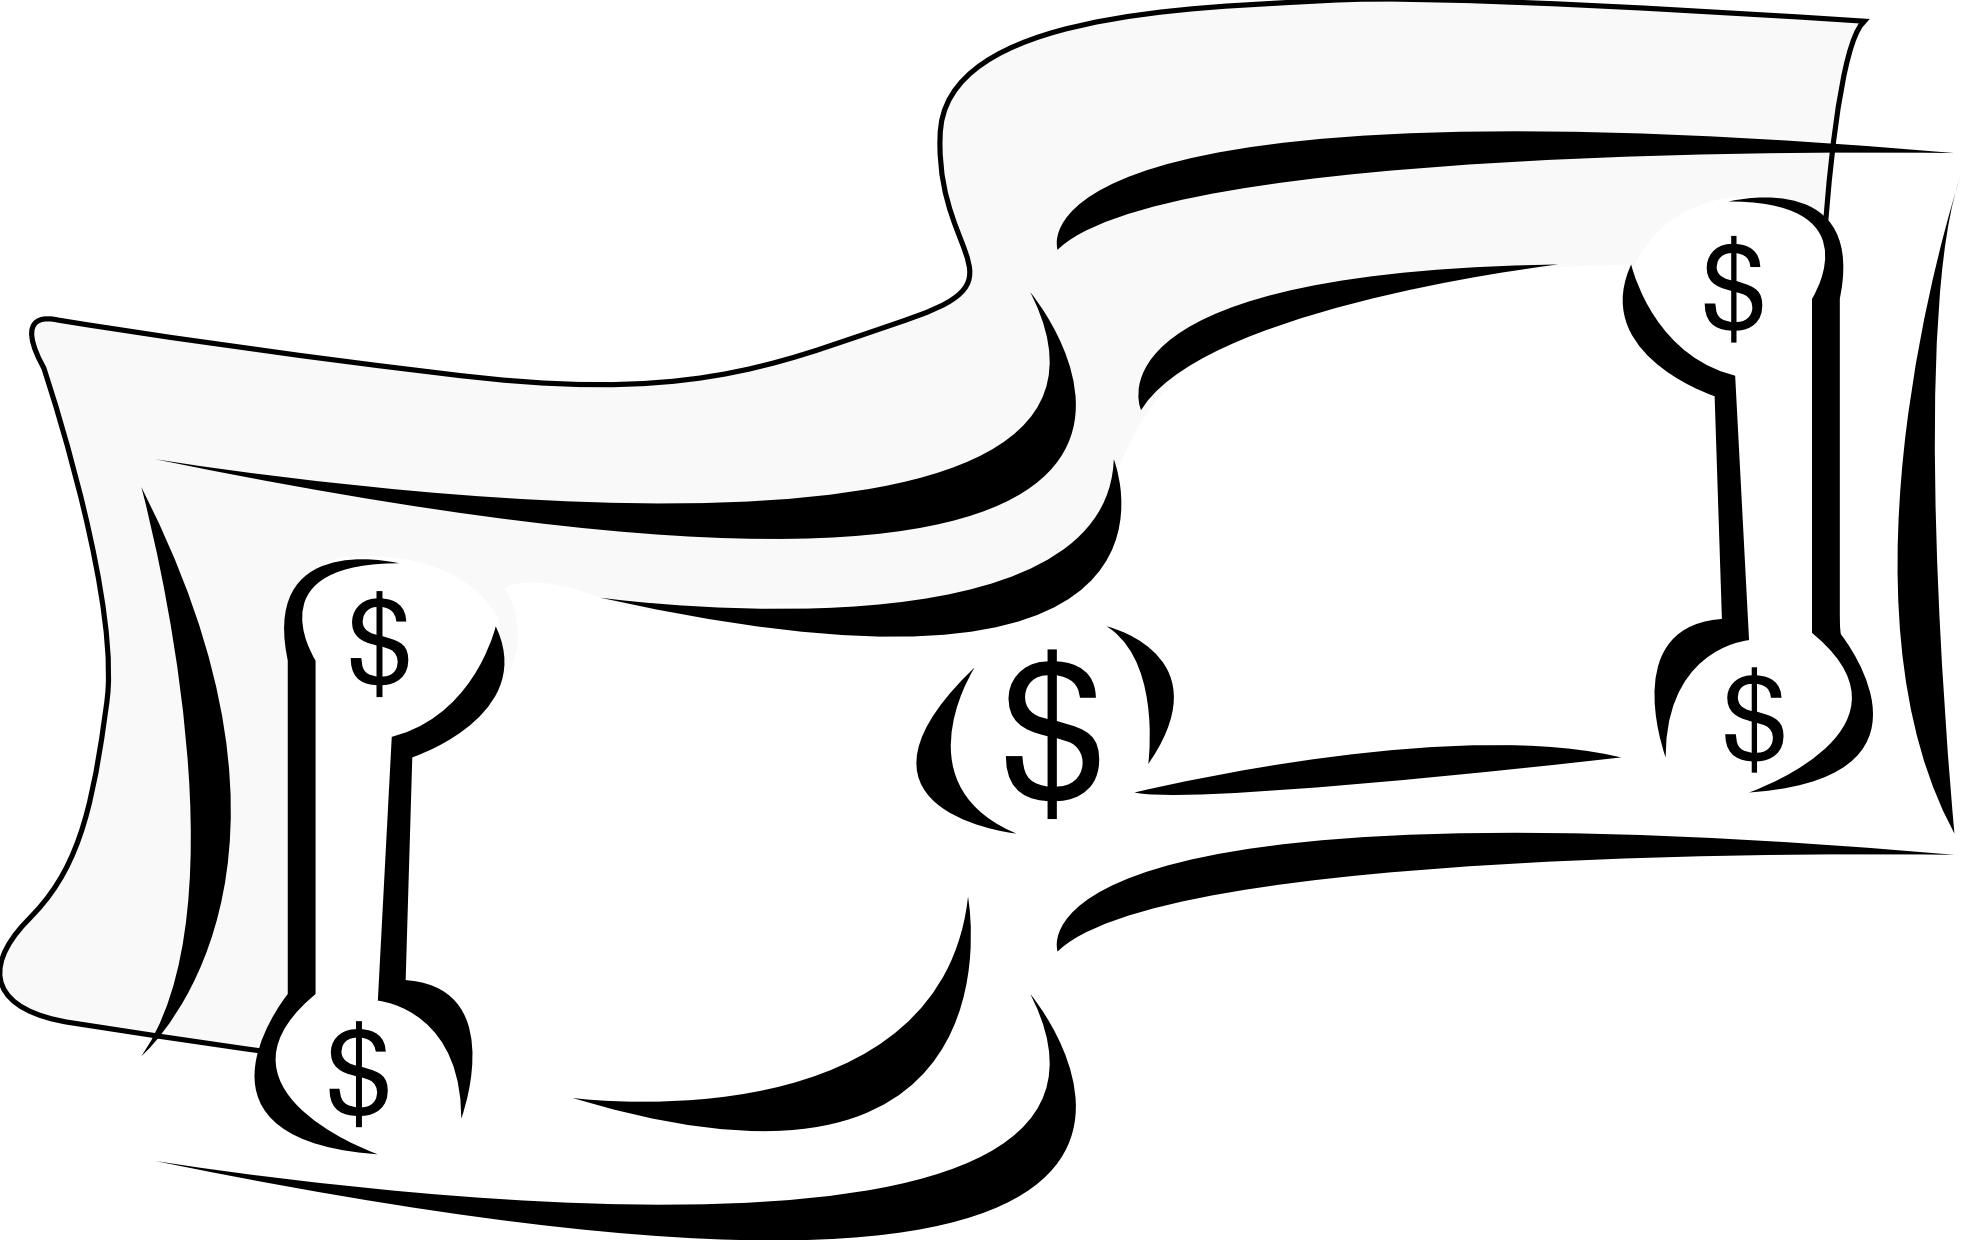 Hand with money in it clipart jpg Money Bills Clipart Black And White | Clipart Panda - Free Clipart ... jpg